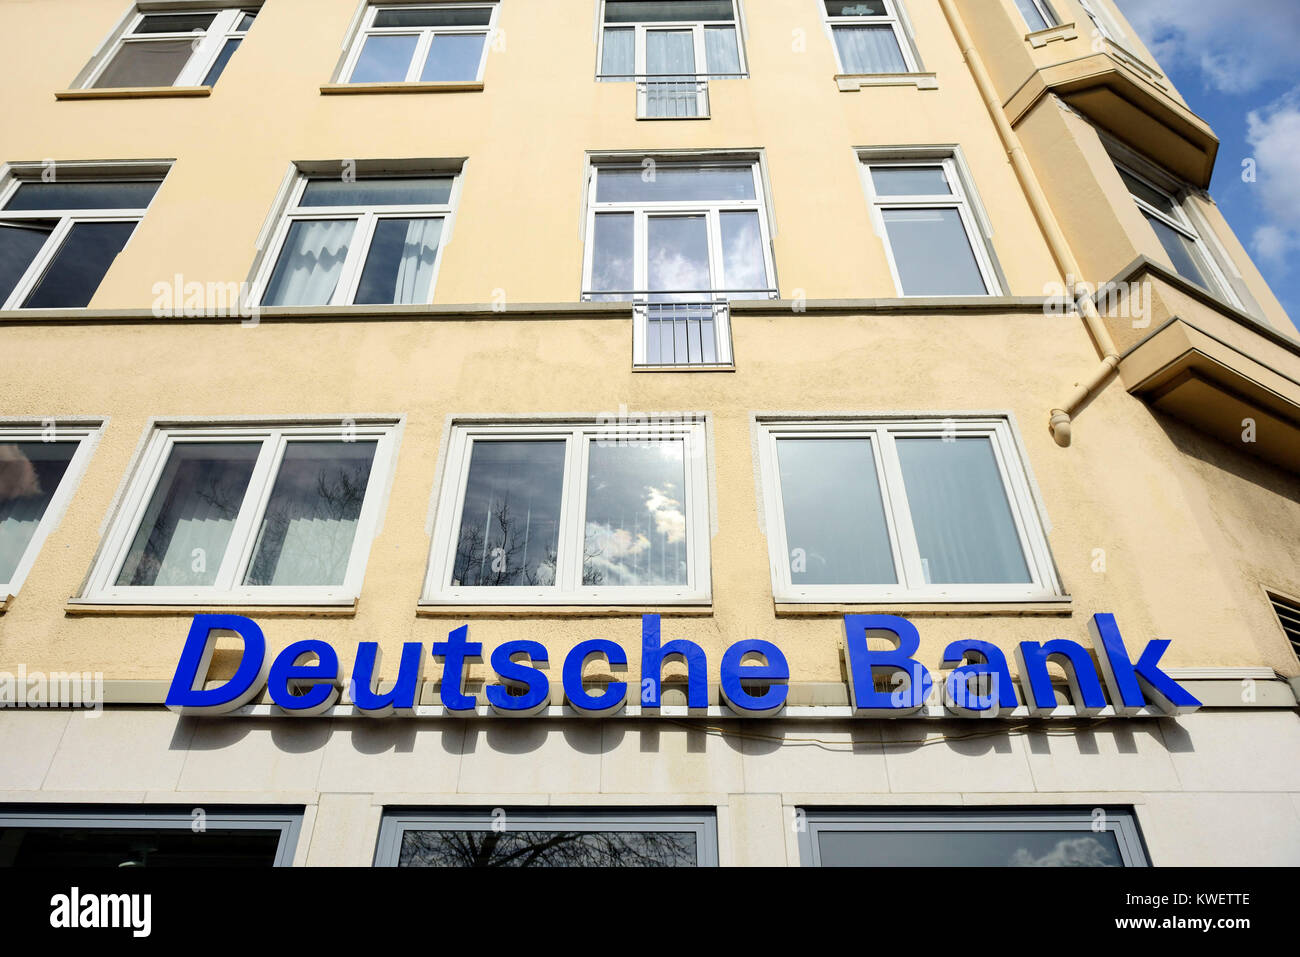 The German bank, Deutsche Bank - Stock Image